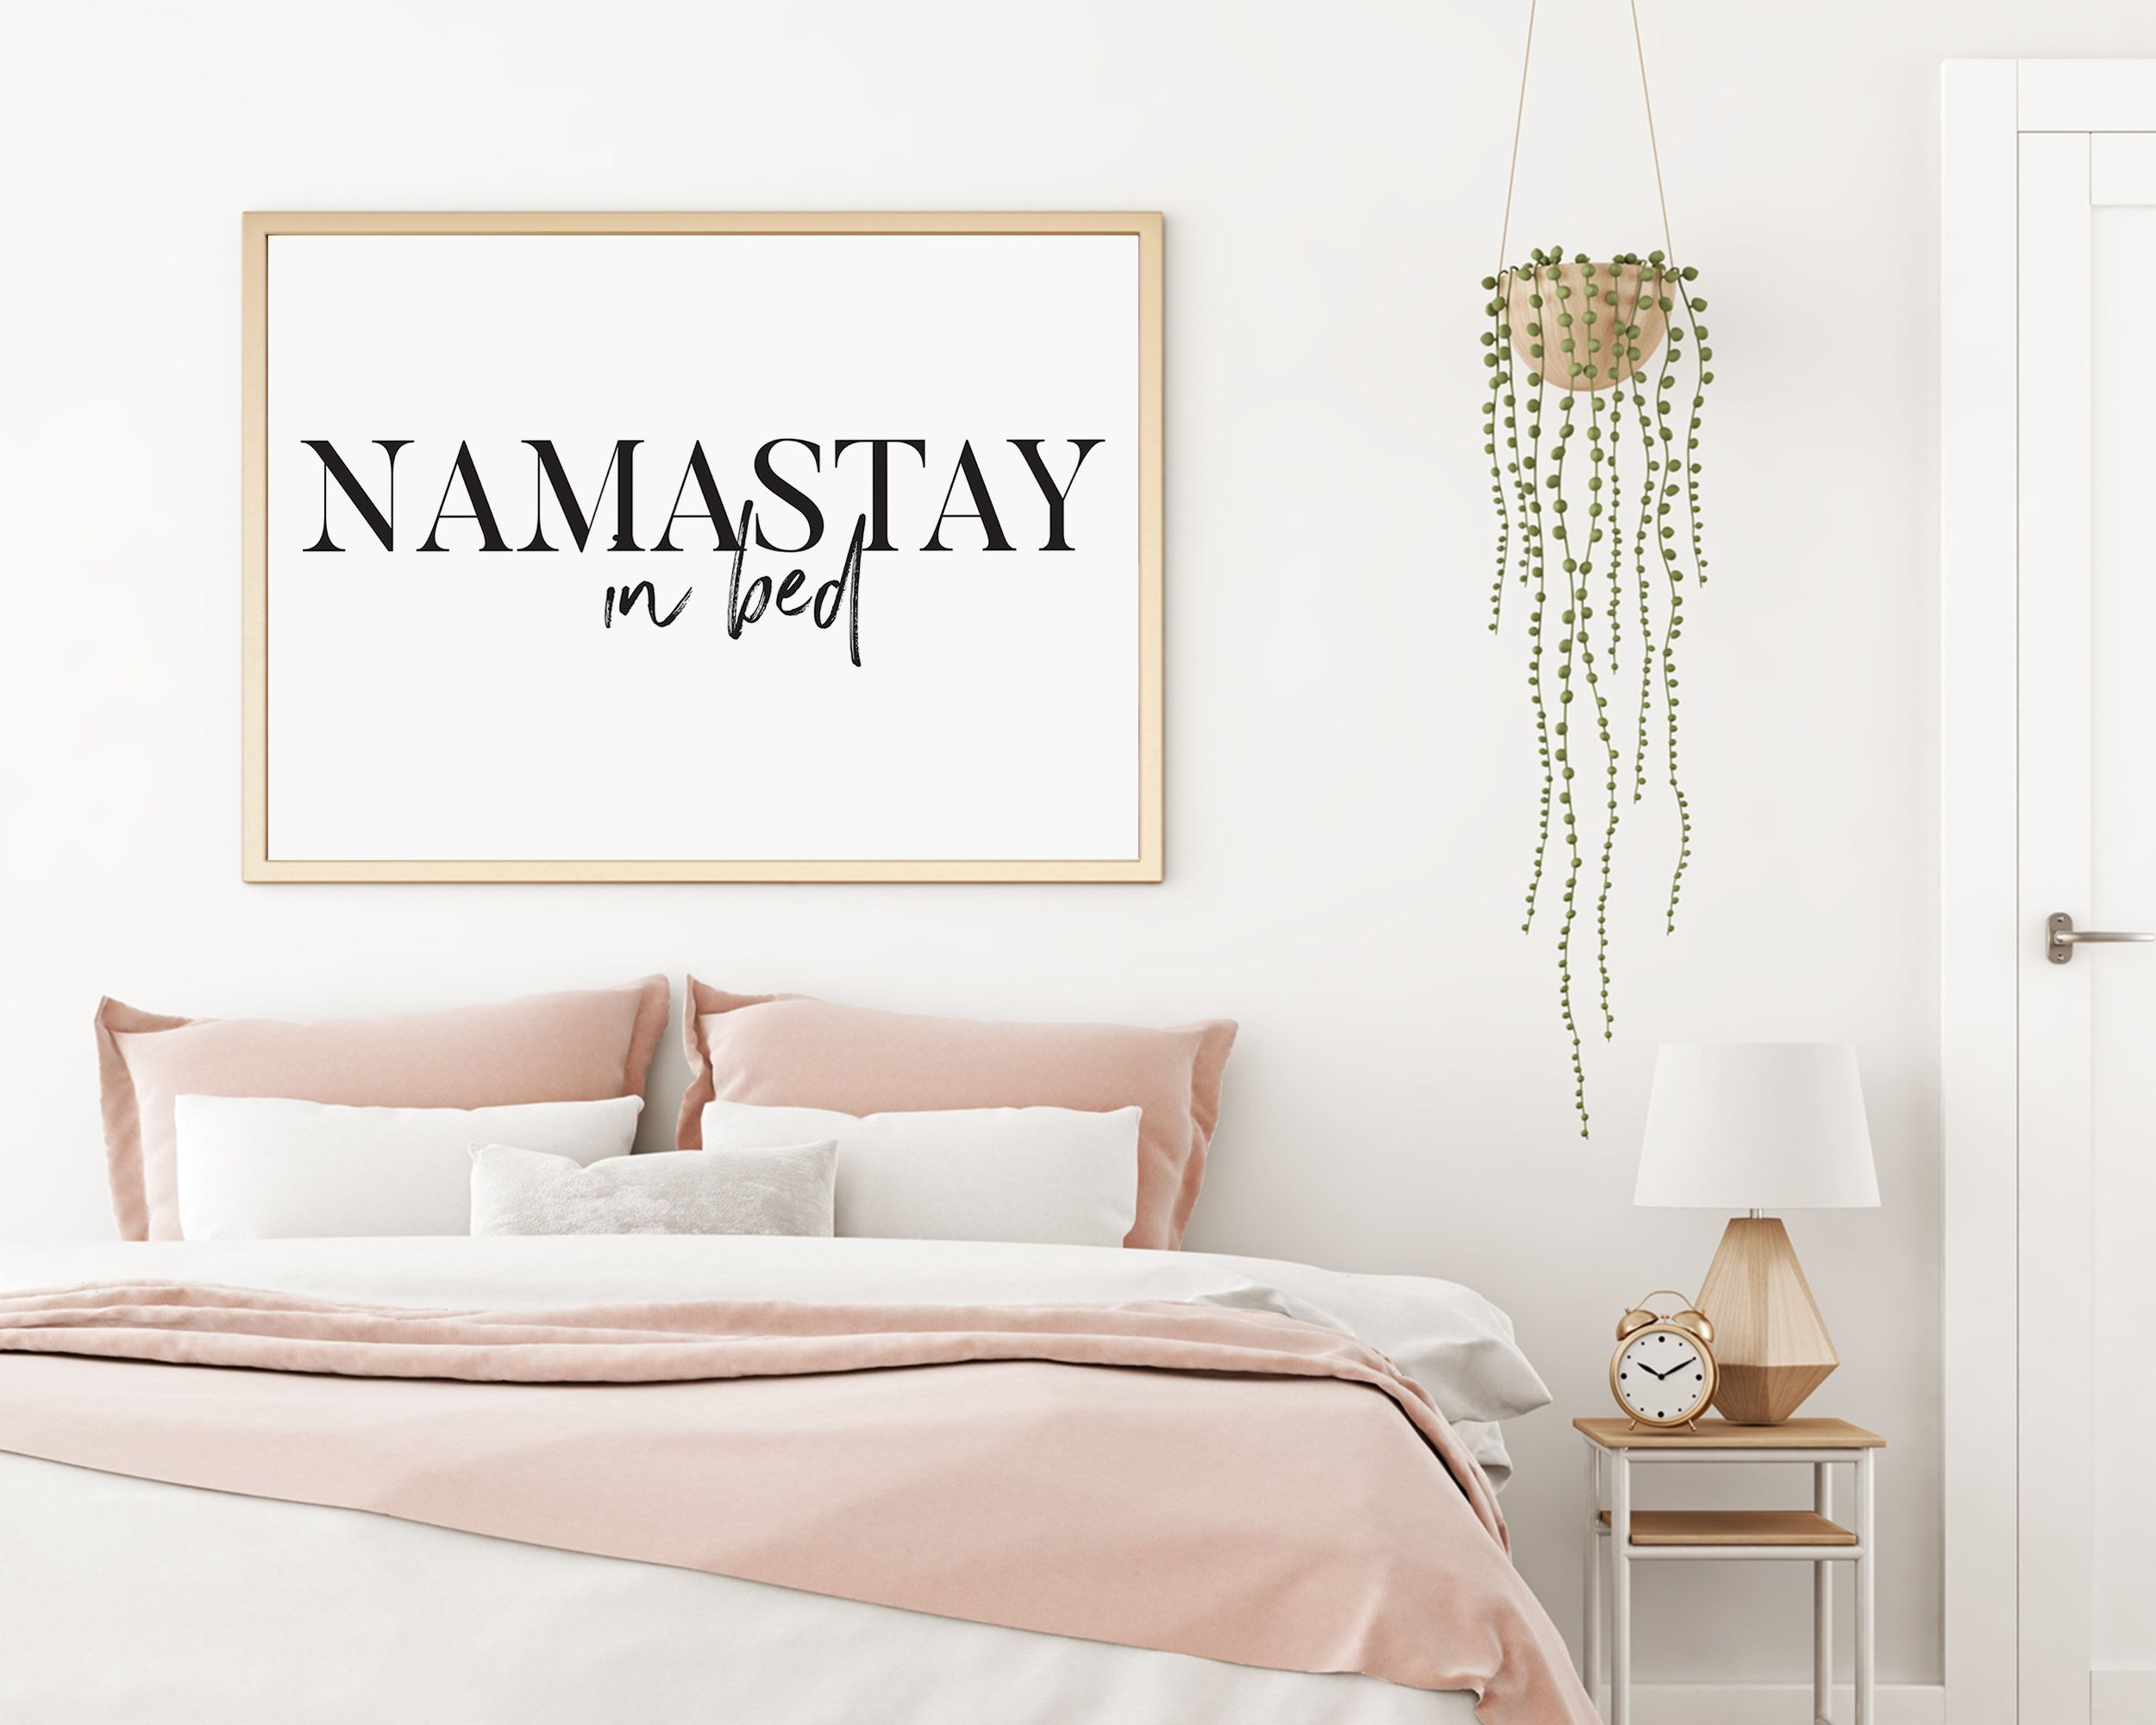 Namastay In Bed Wall Art Namaste In Bed Print Bedroom Etsy Master Bedroom Wall Decor Bedroom Wall Decor Above Bed Above Bed Decor